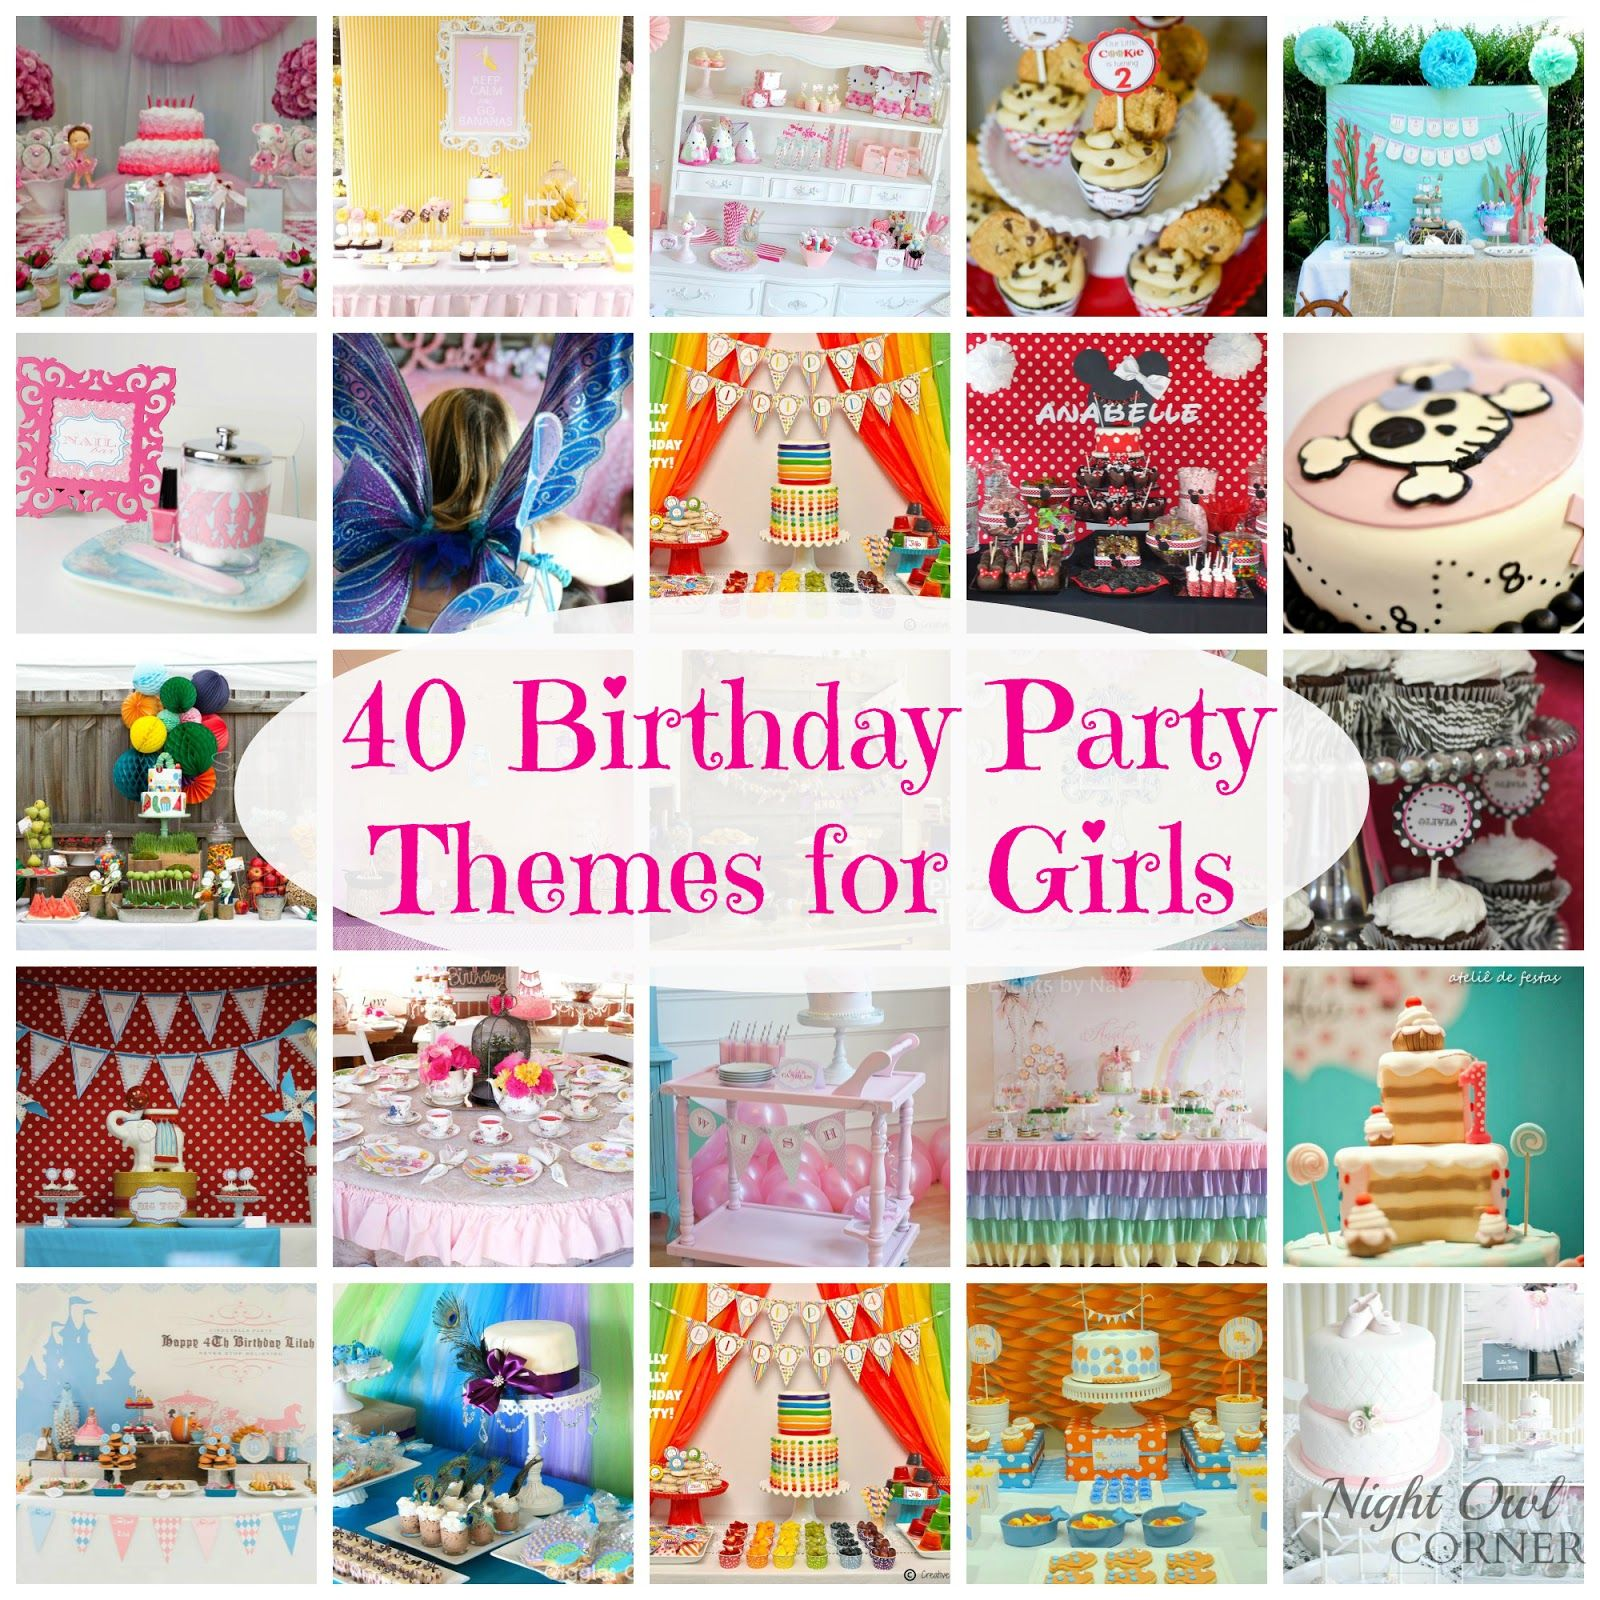 Night Owl Corner 40 Birthday Party Themes For Girls LOVE This Site All The Cool Ideas Several Of Them Could Be Used Boys As Well